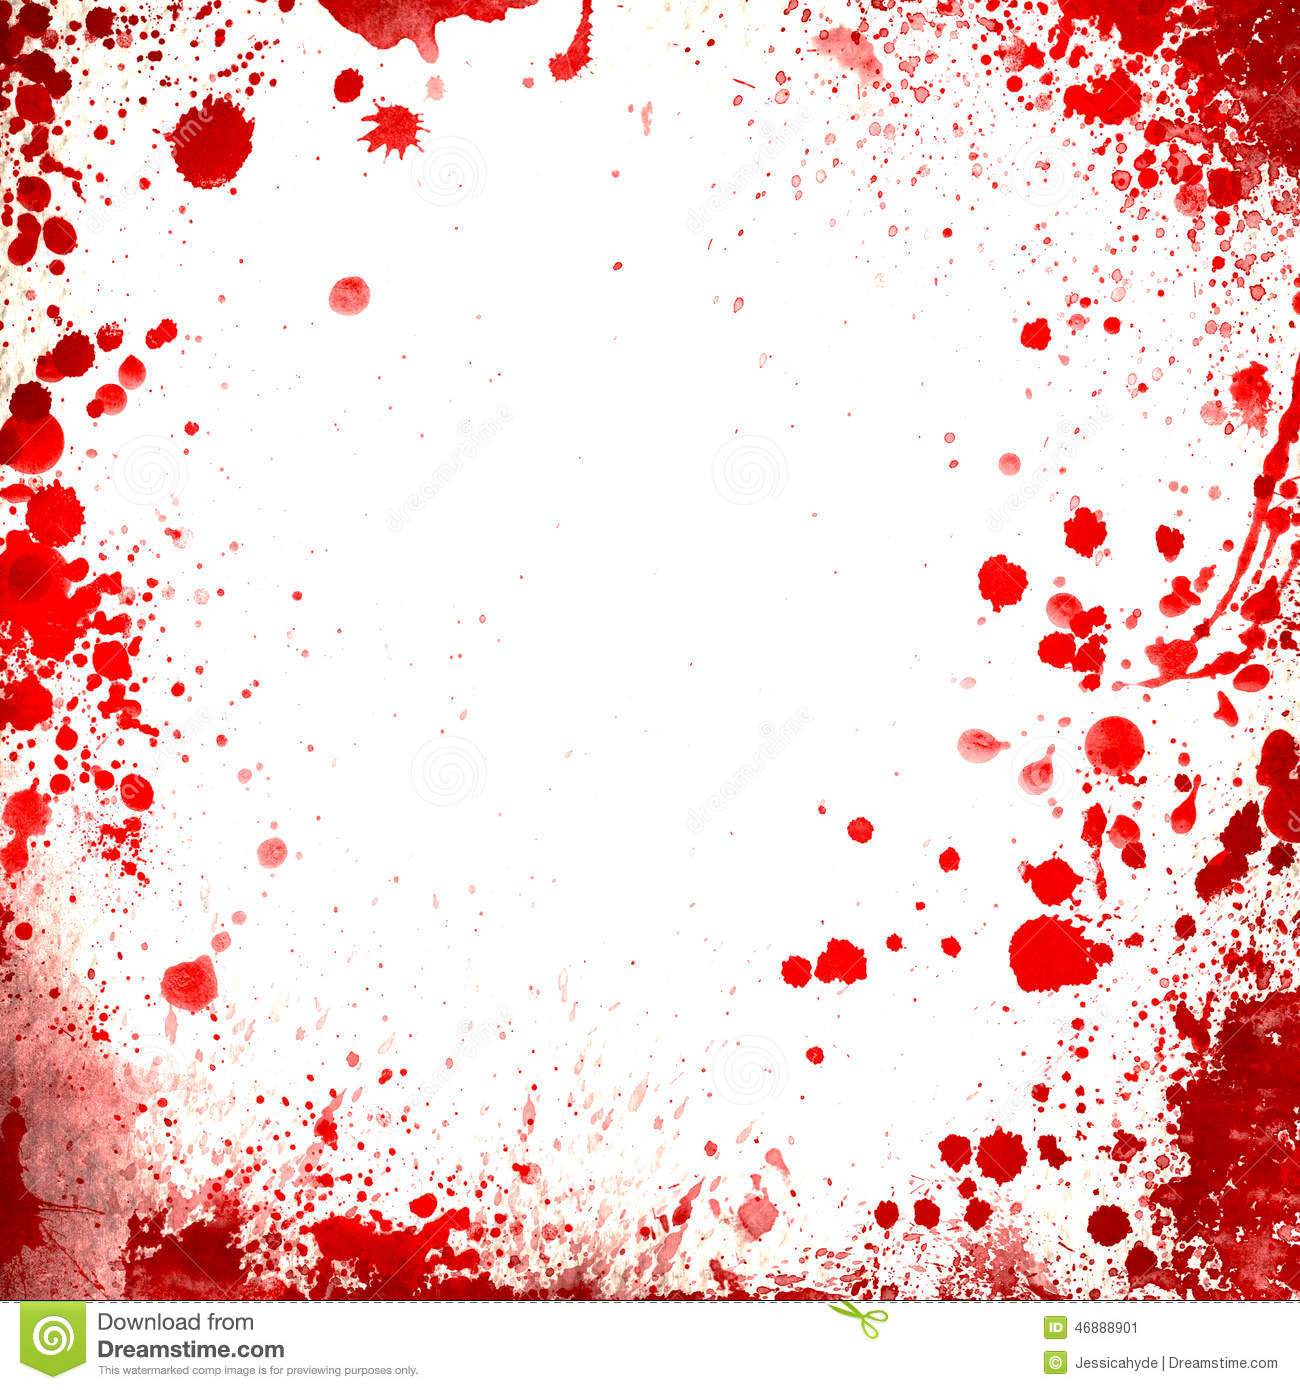 White Background Whit Red Blood Splatters Borders Stock